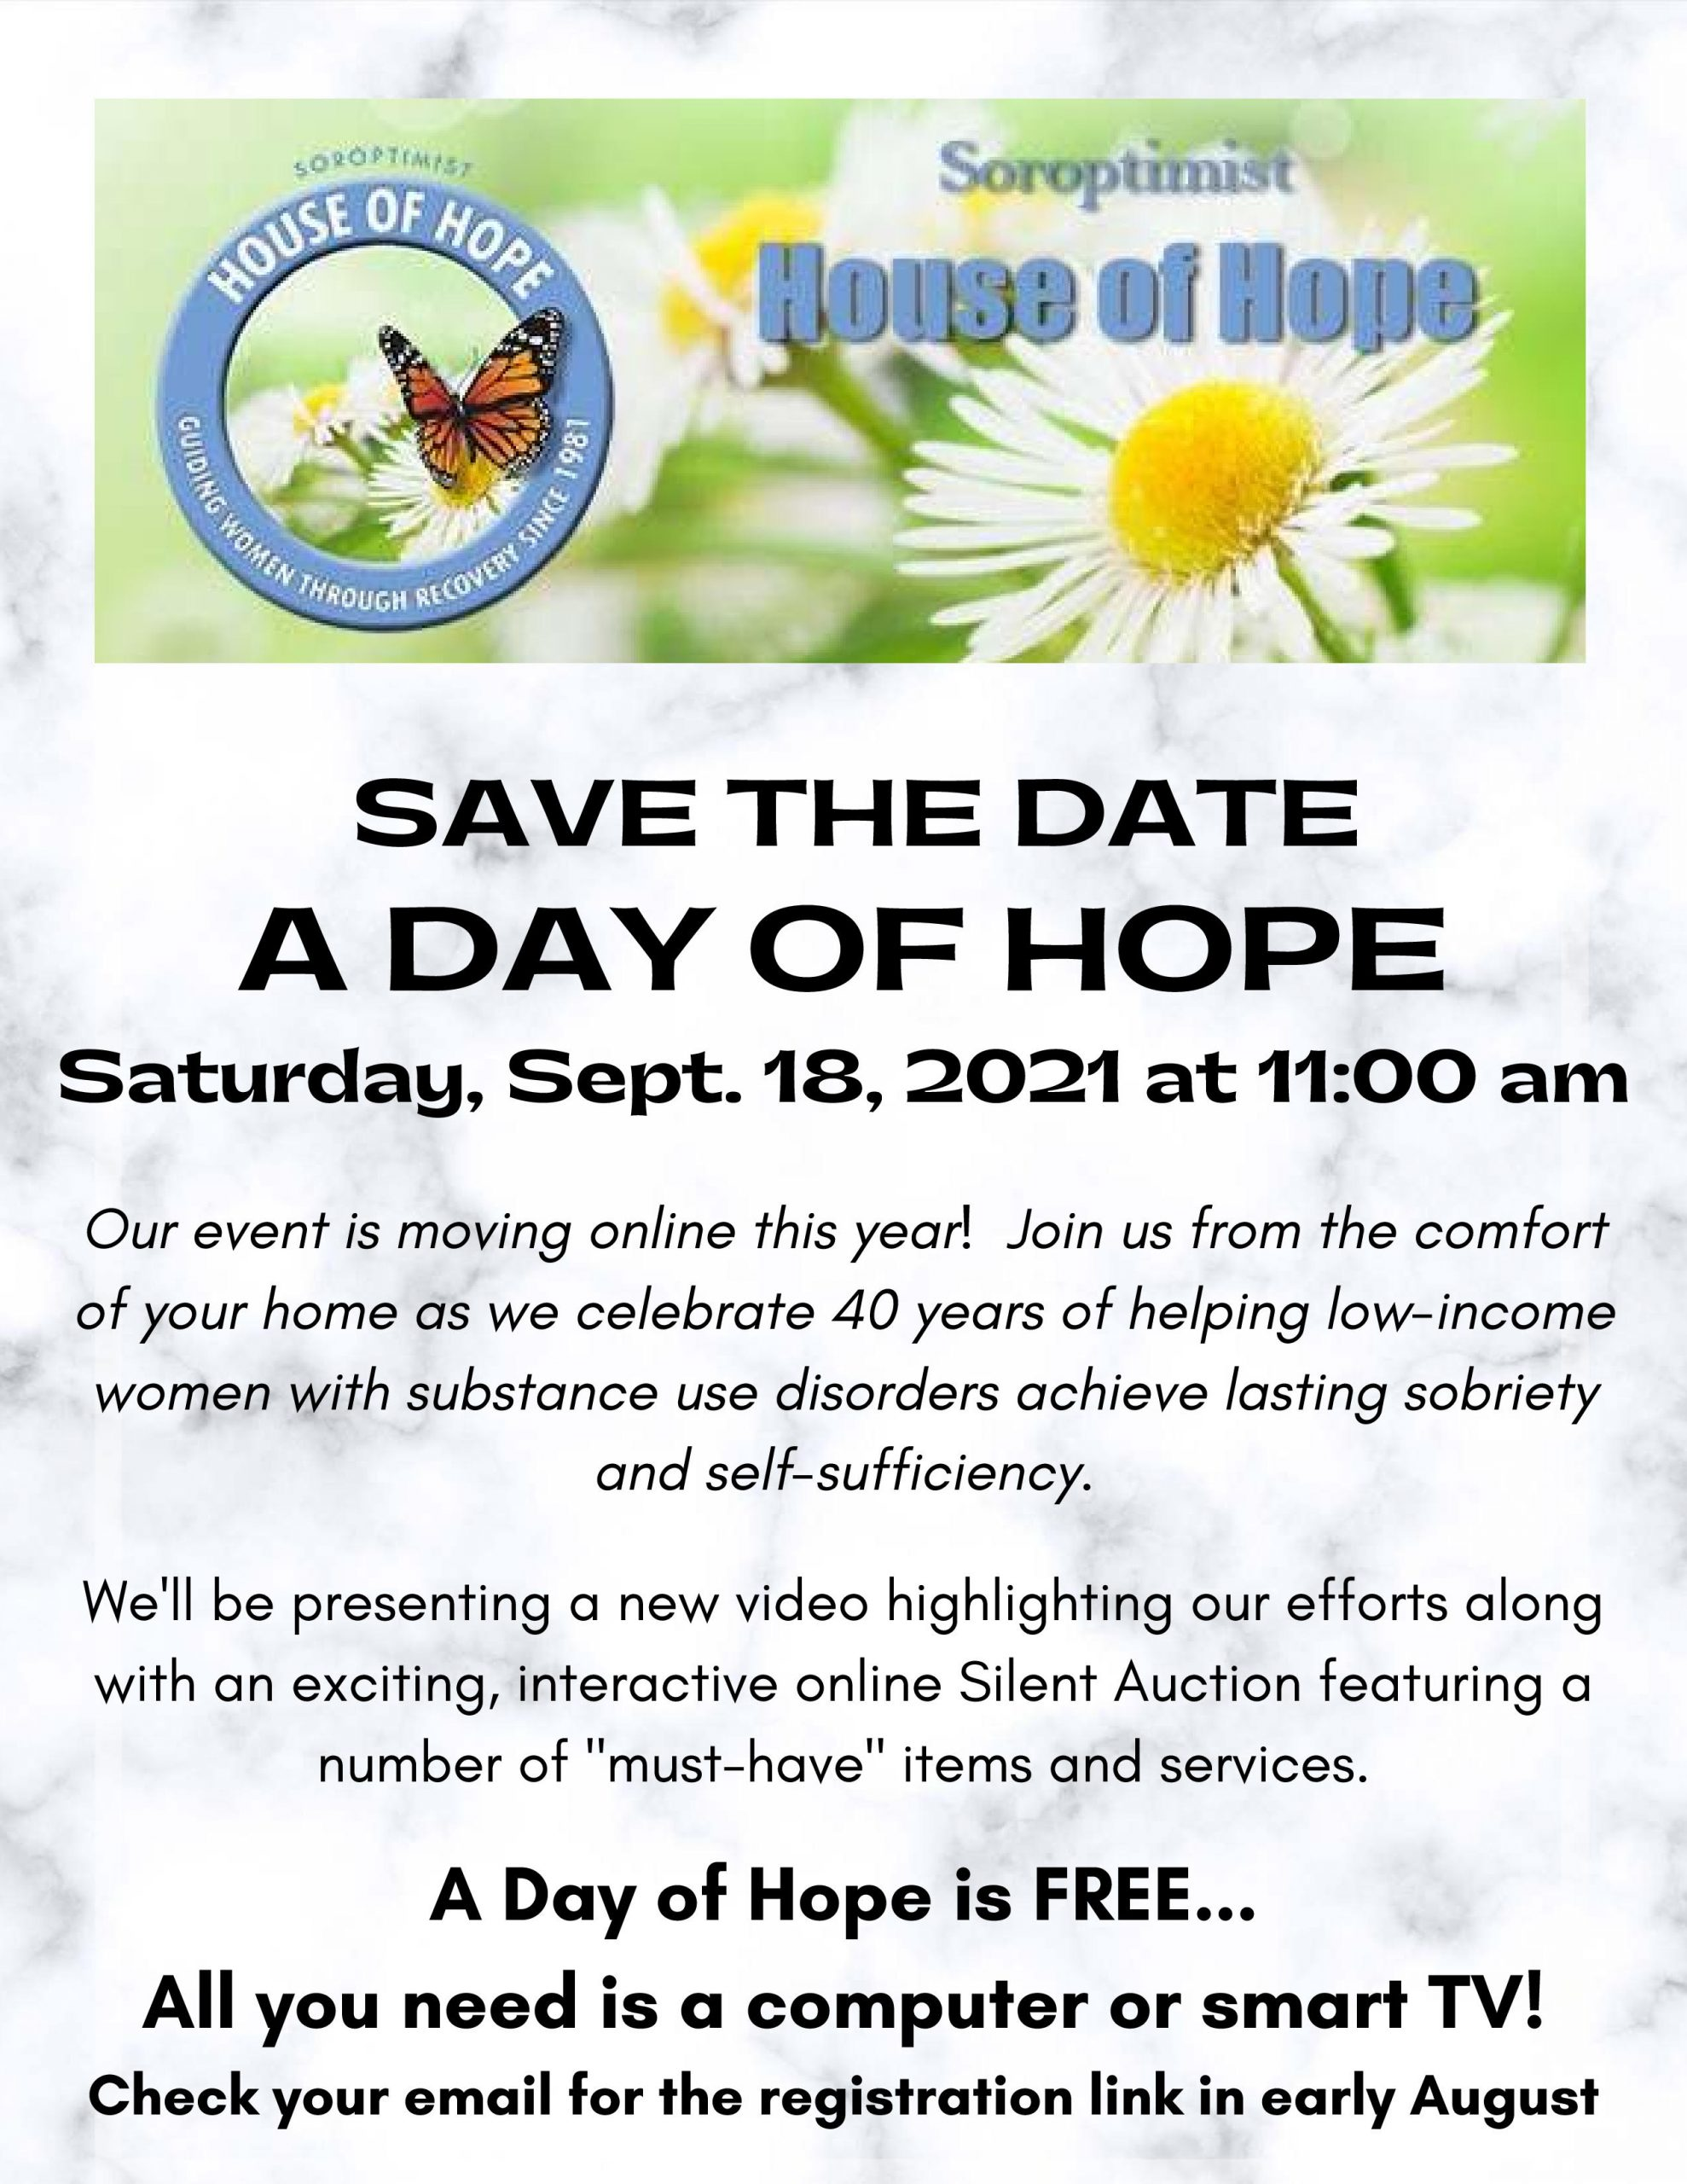 Save the date: A day of hope, Sept. 18th at 11:00 am